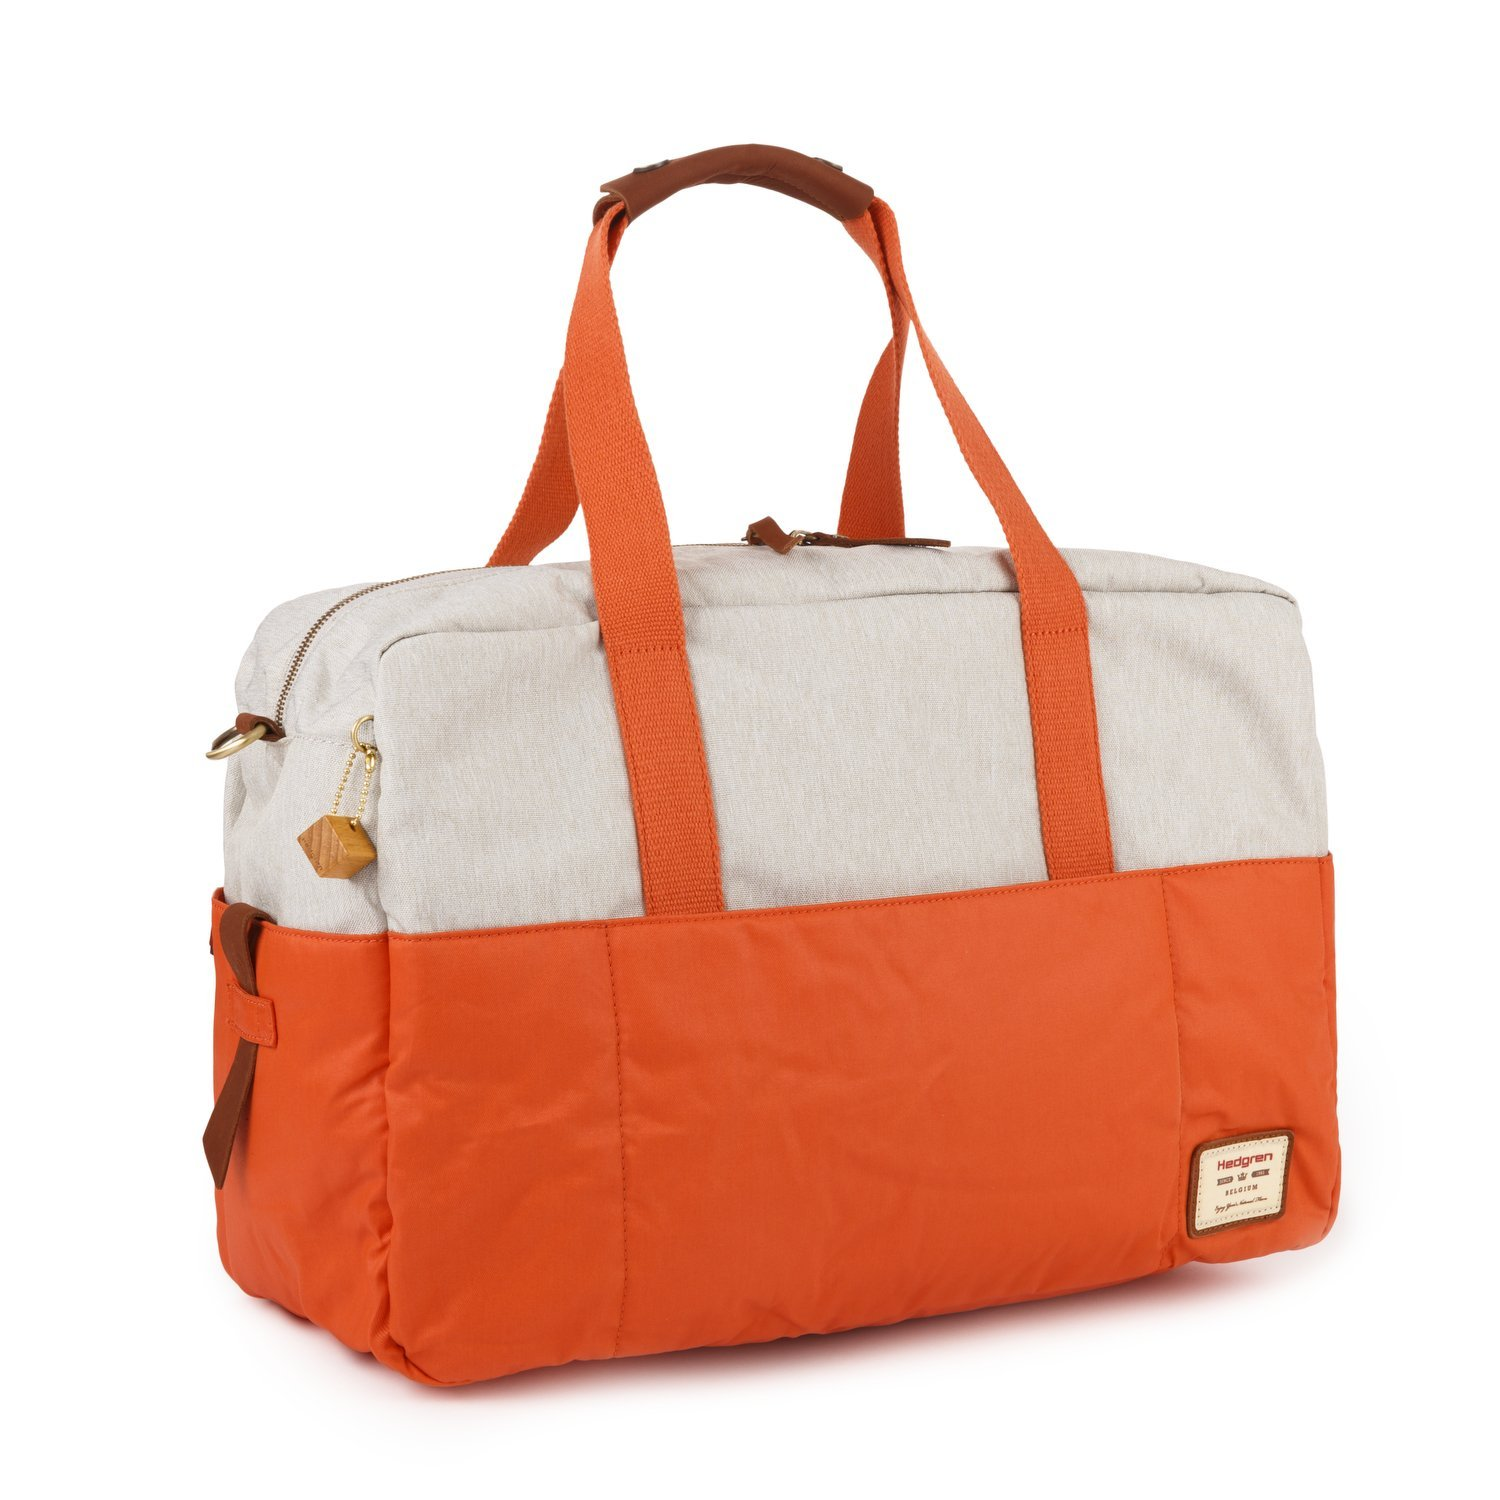 Womens 19.7 x 8 x 12 Inches Detachable Shoulder Strap Apricot Brandy//Off White Water Repellent Hedgren Sitka L Large Duffle